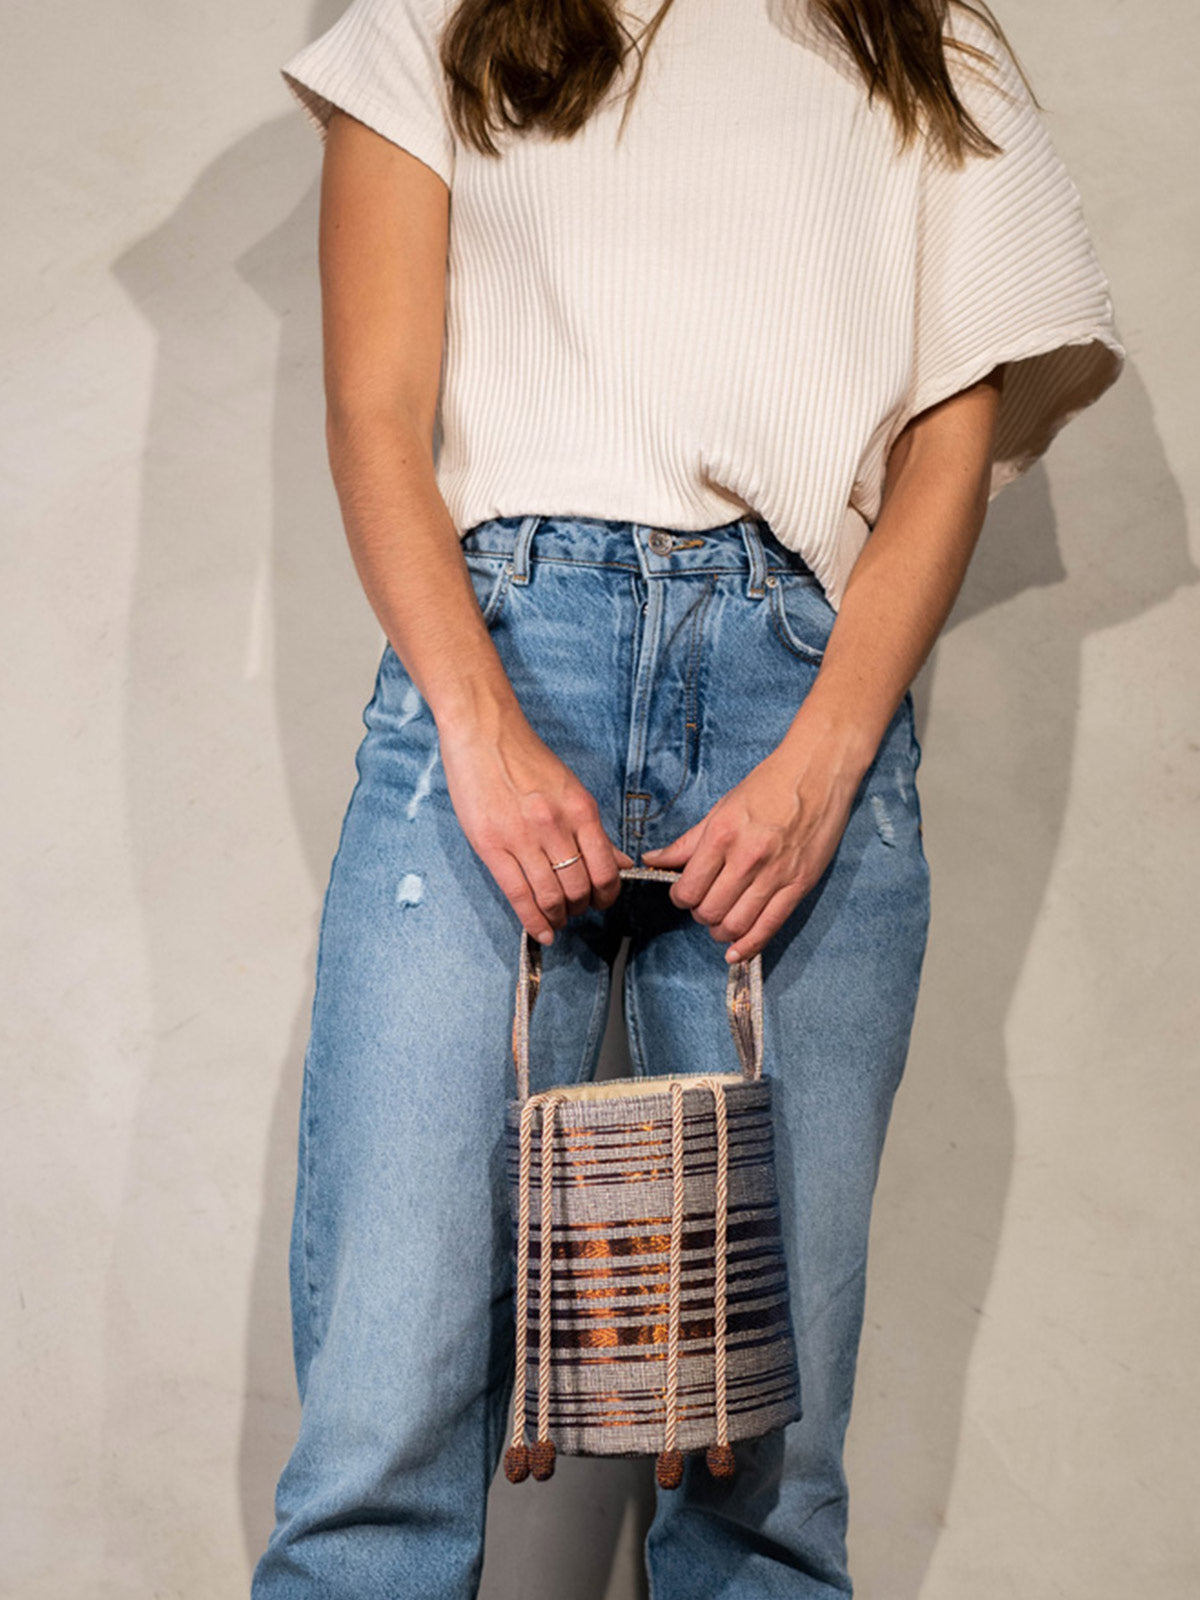 Bucket Bag | Navy & Copper Bucket Bag | Navy & Copper